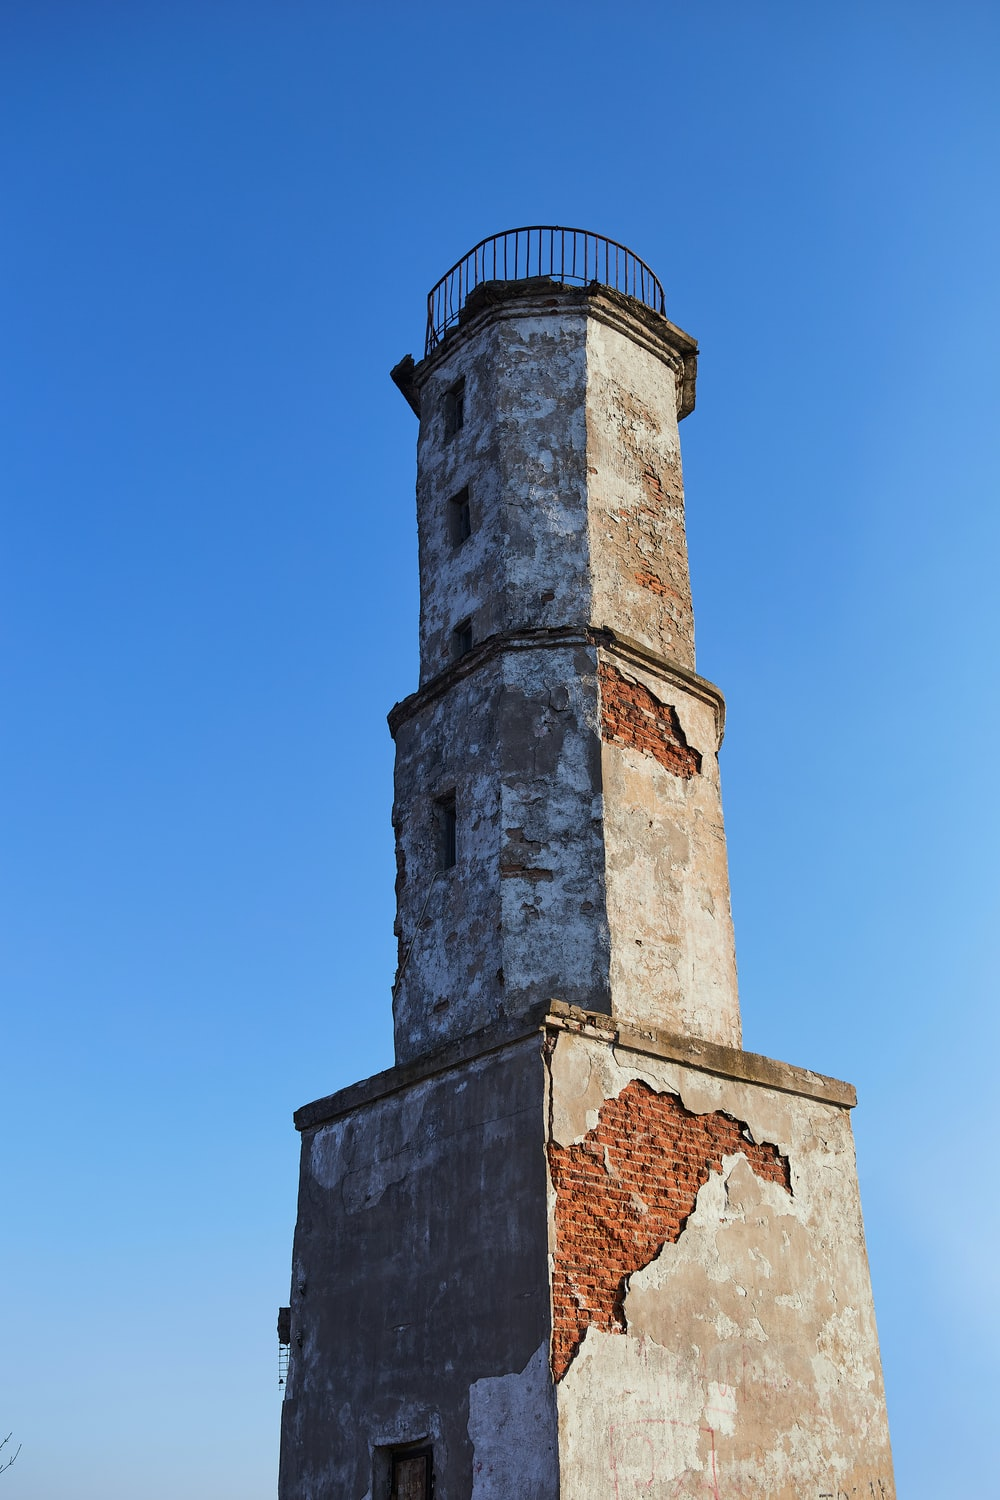 brown concrete tower under blue sky during daytime